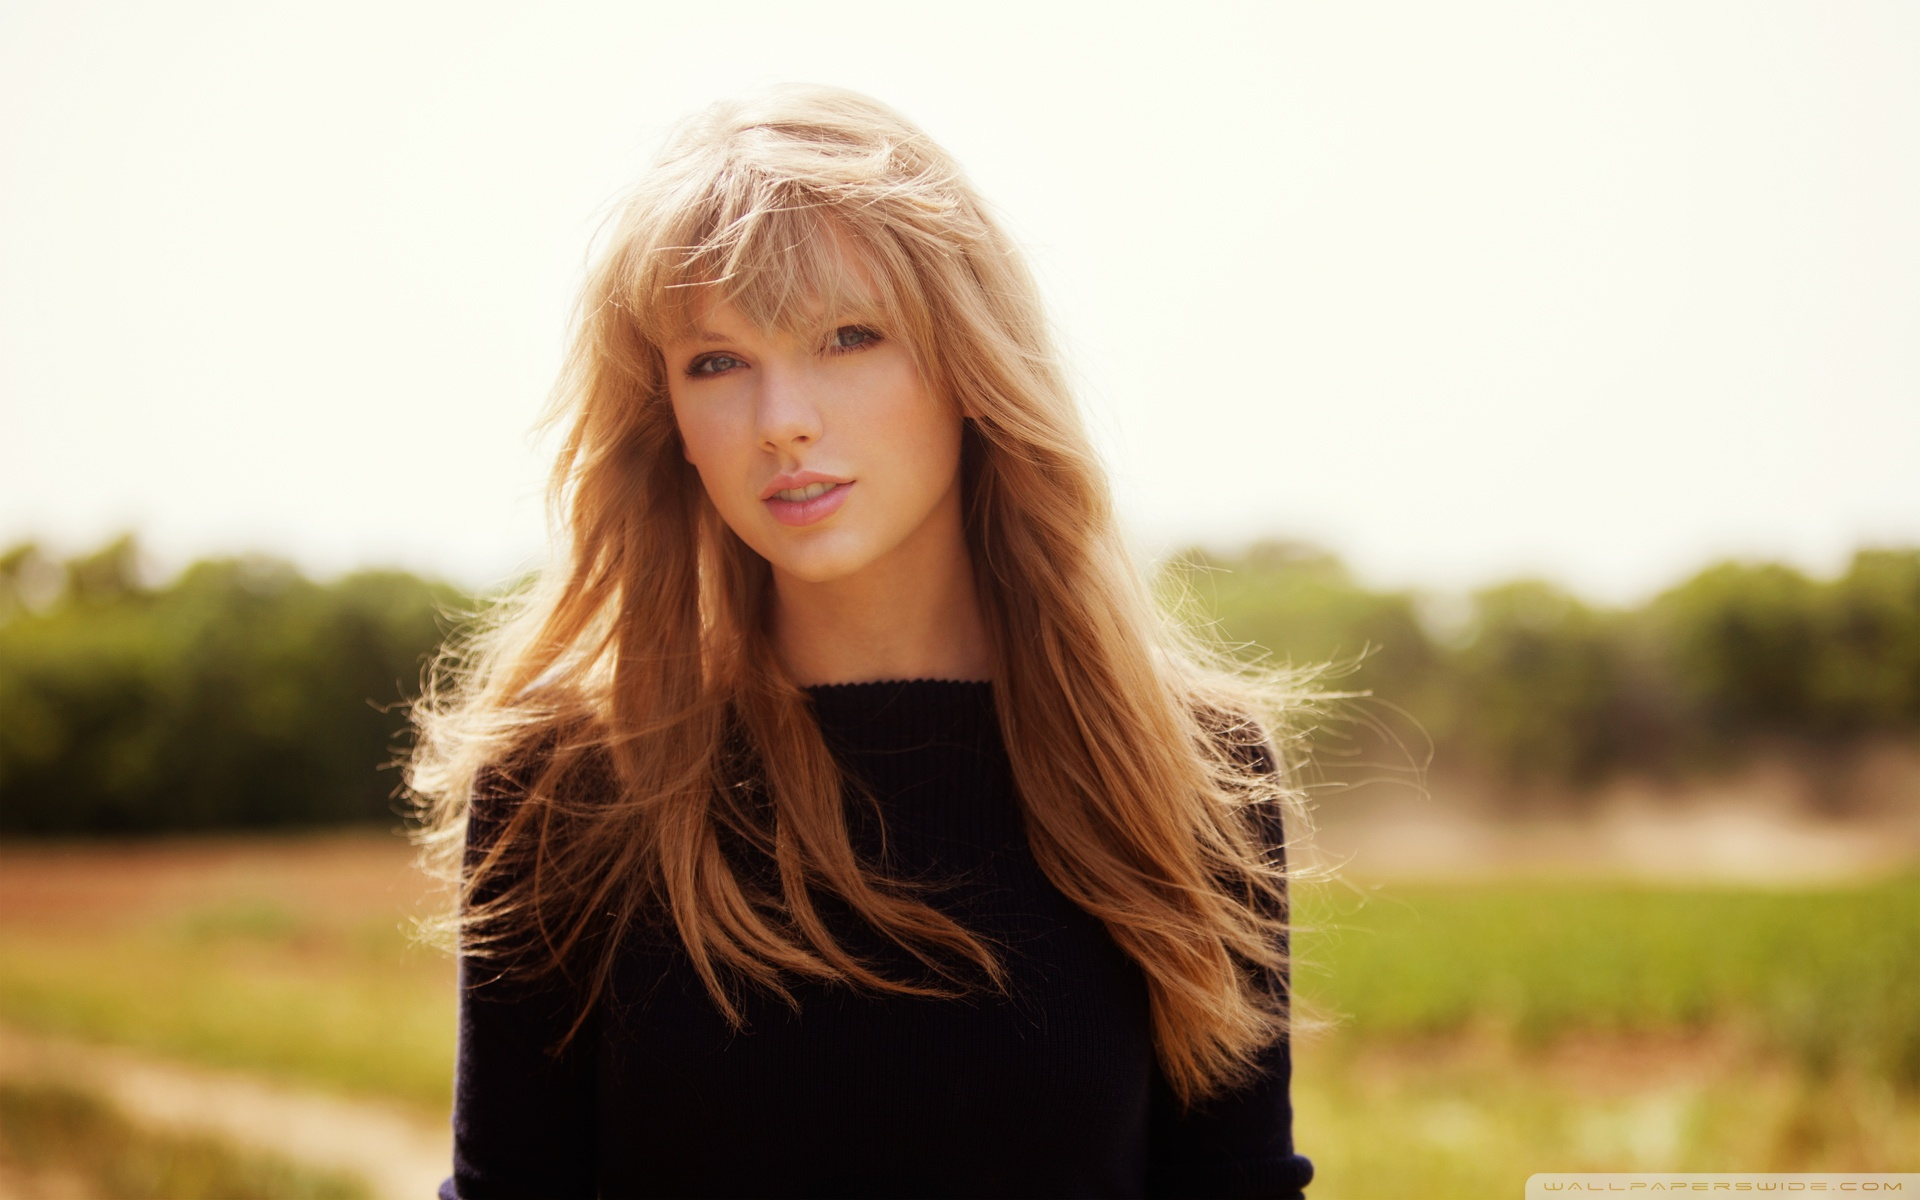 Taylor Swift+Wallpaper